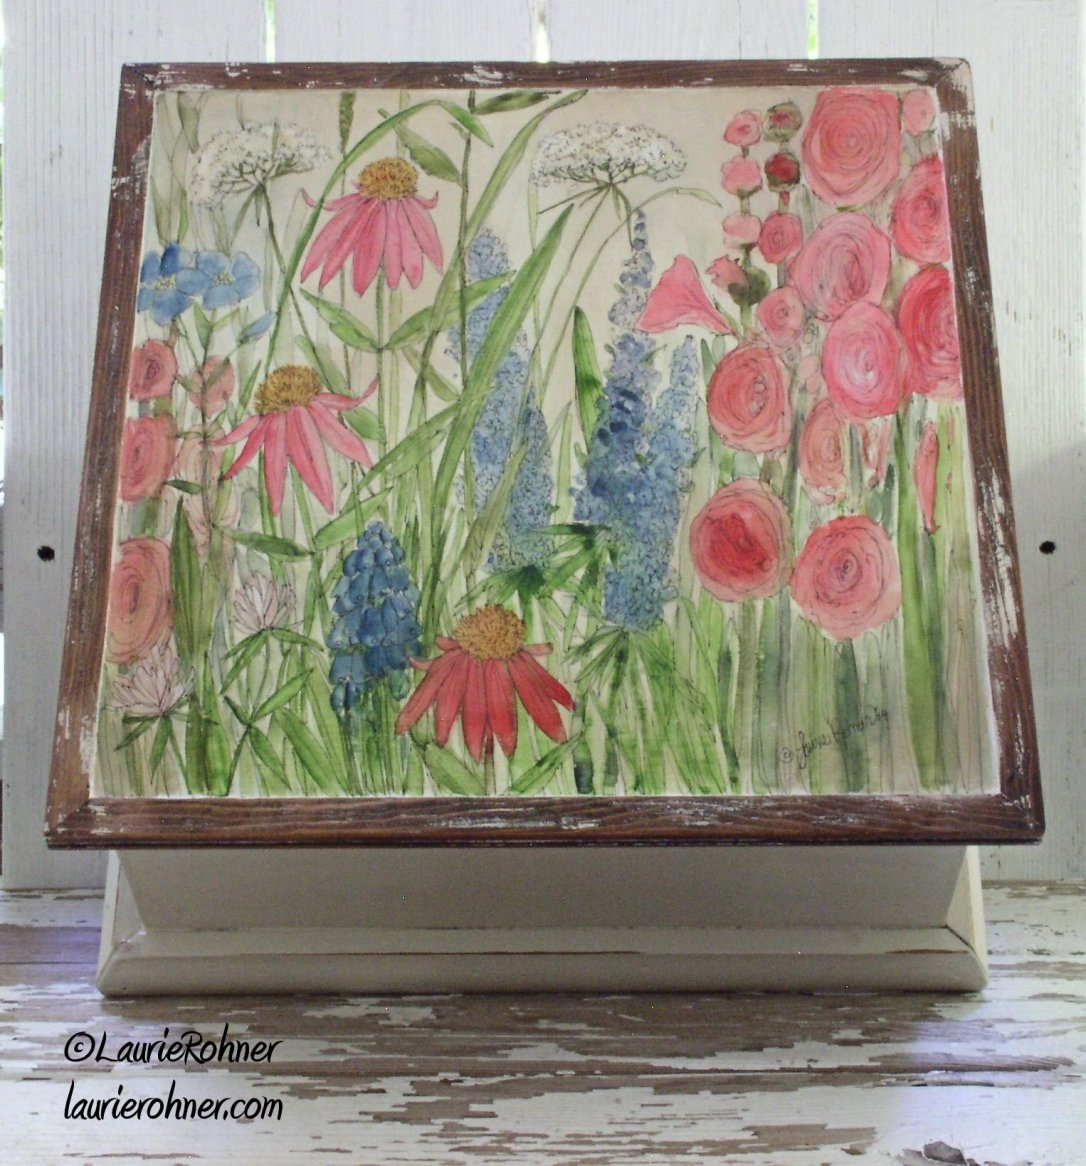 Large painted wood box